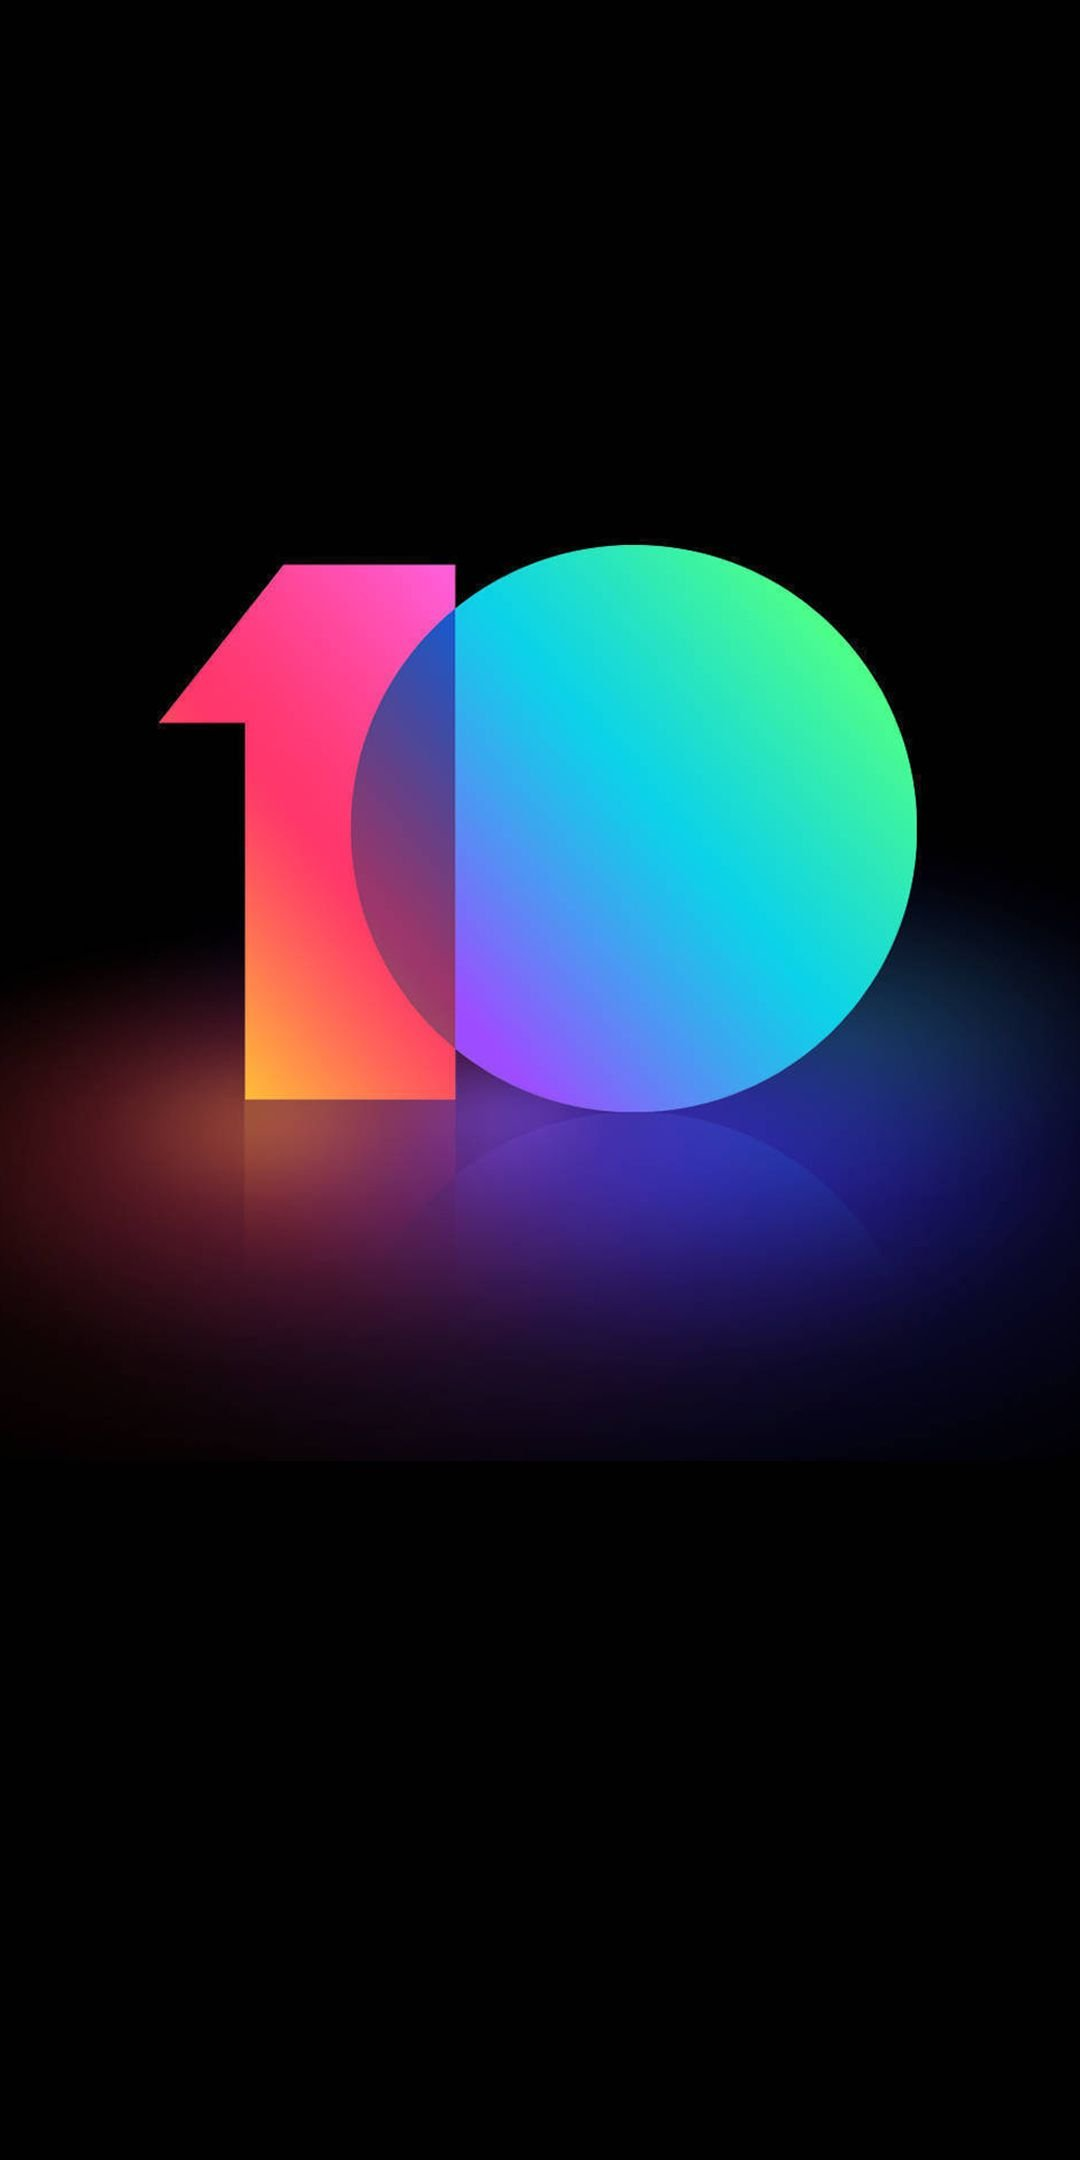 Download MIUI 10 Wallpapers - Stock Xiaomi Pictures